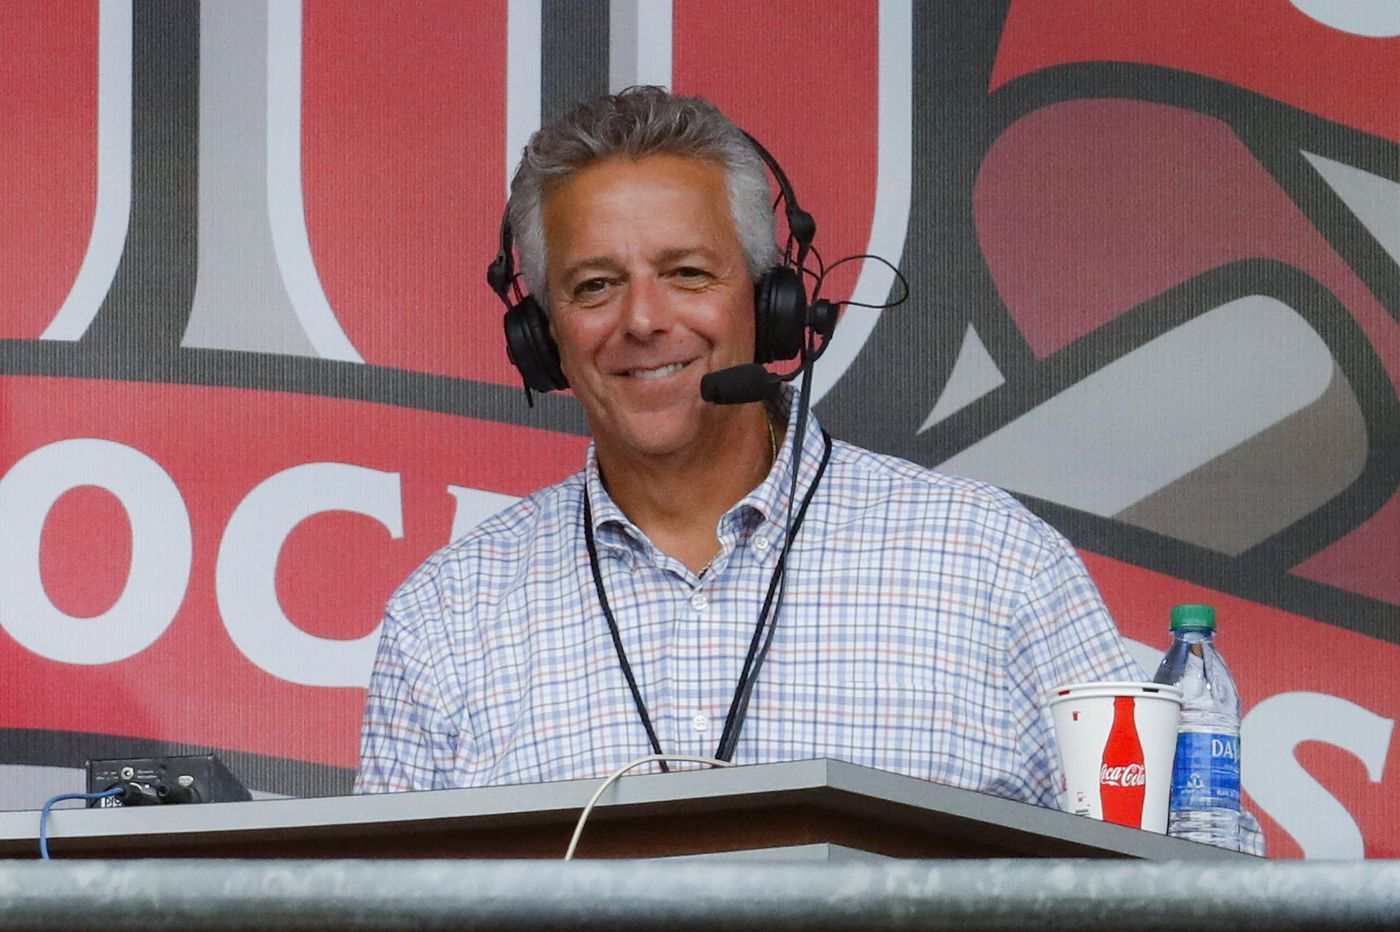 Reds broadcaster Thom Brennaman is suspended after using gay slur on air